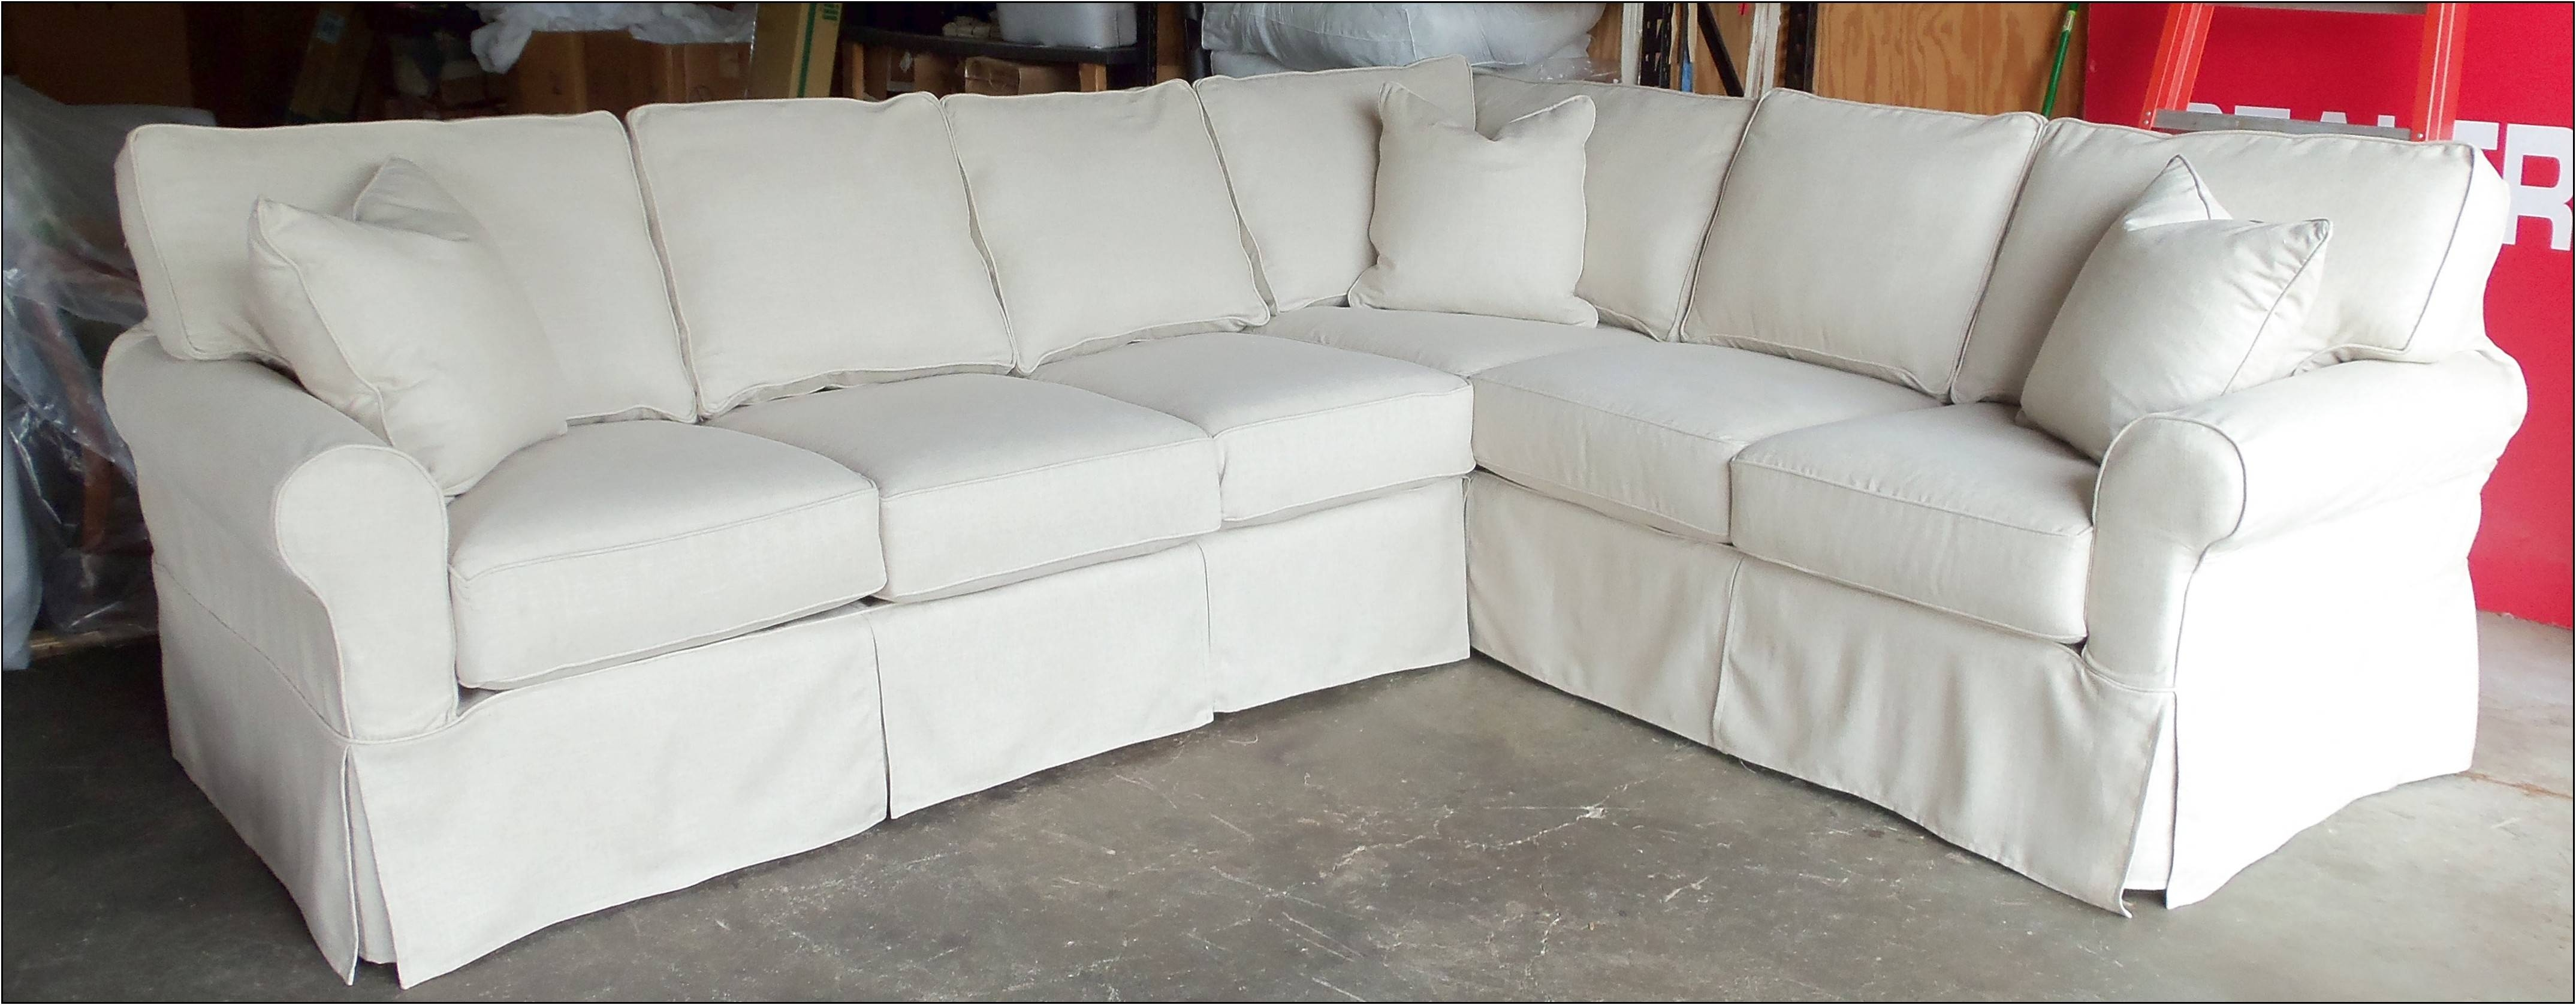 Sofa Covers For Sectionals - Cleanupflorida throughout Short Sectional Sofas (Image 14 of 15)